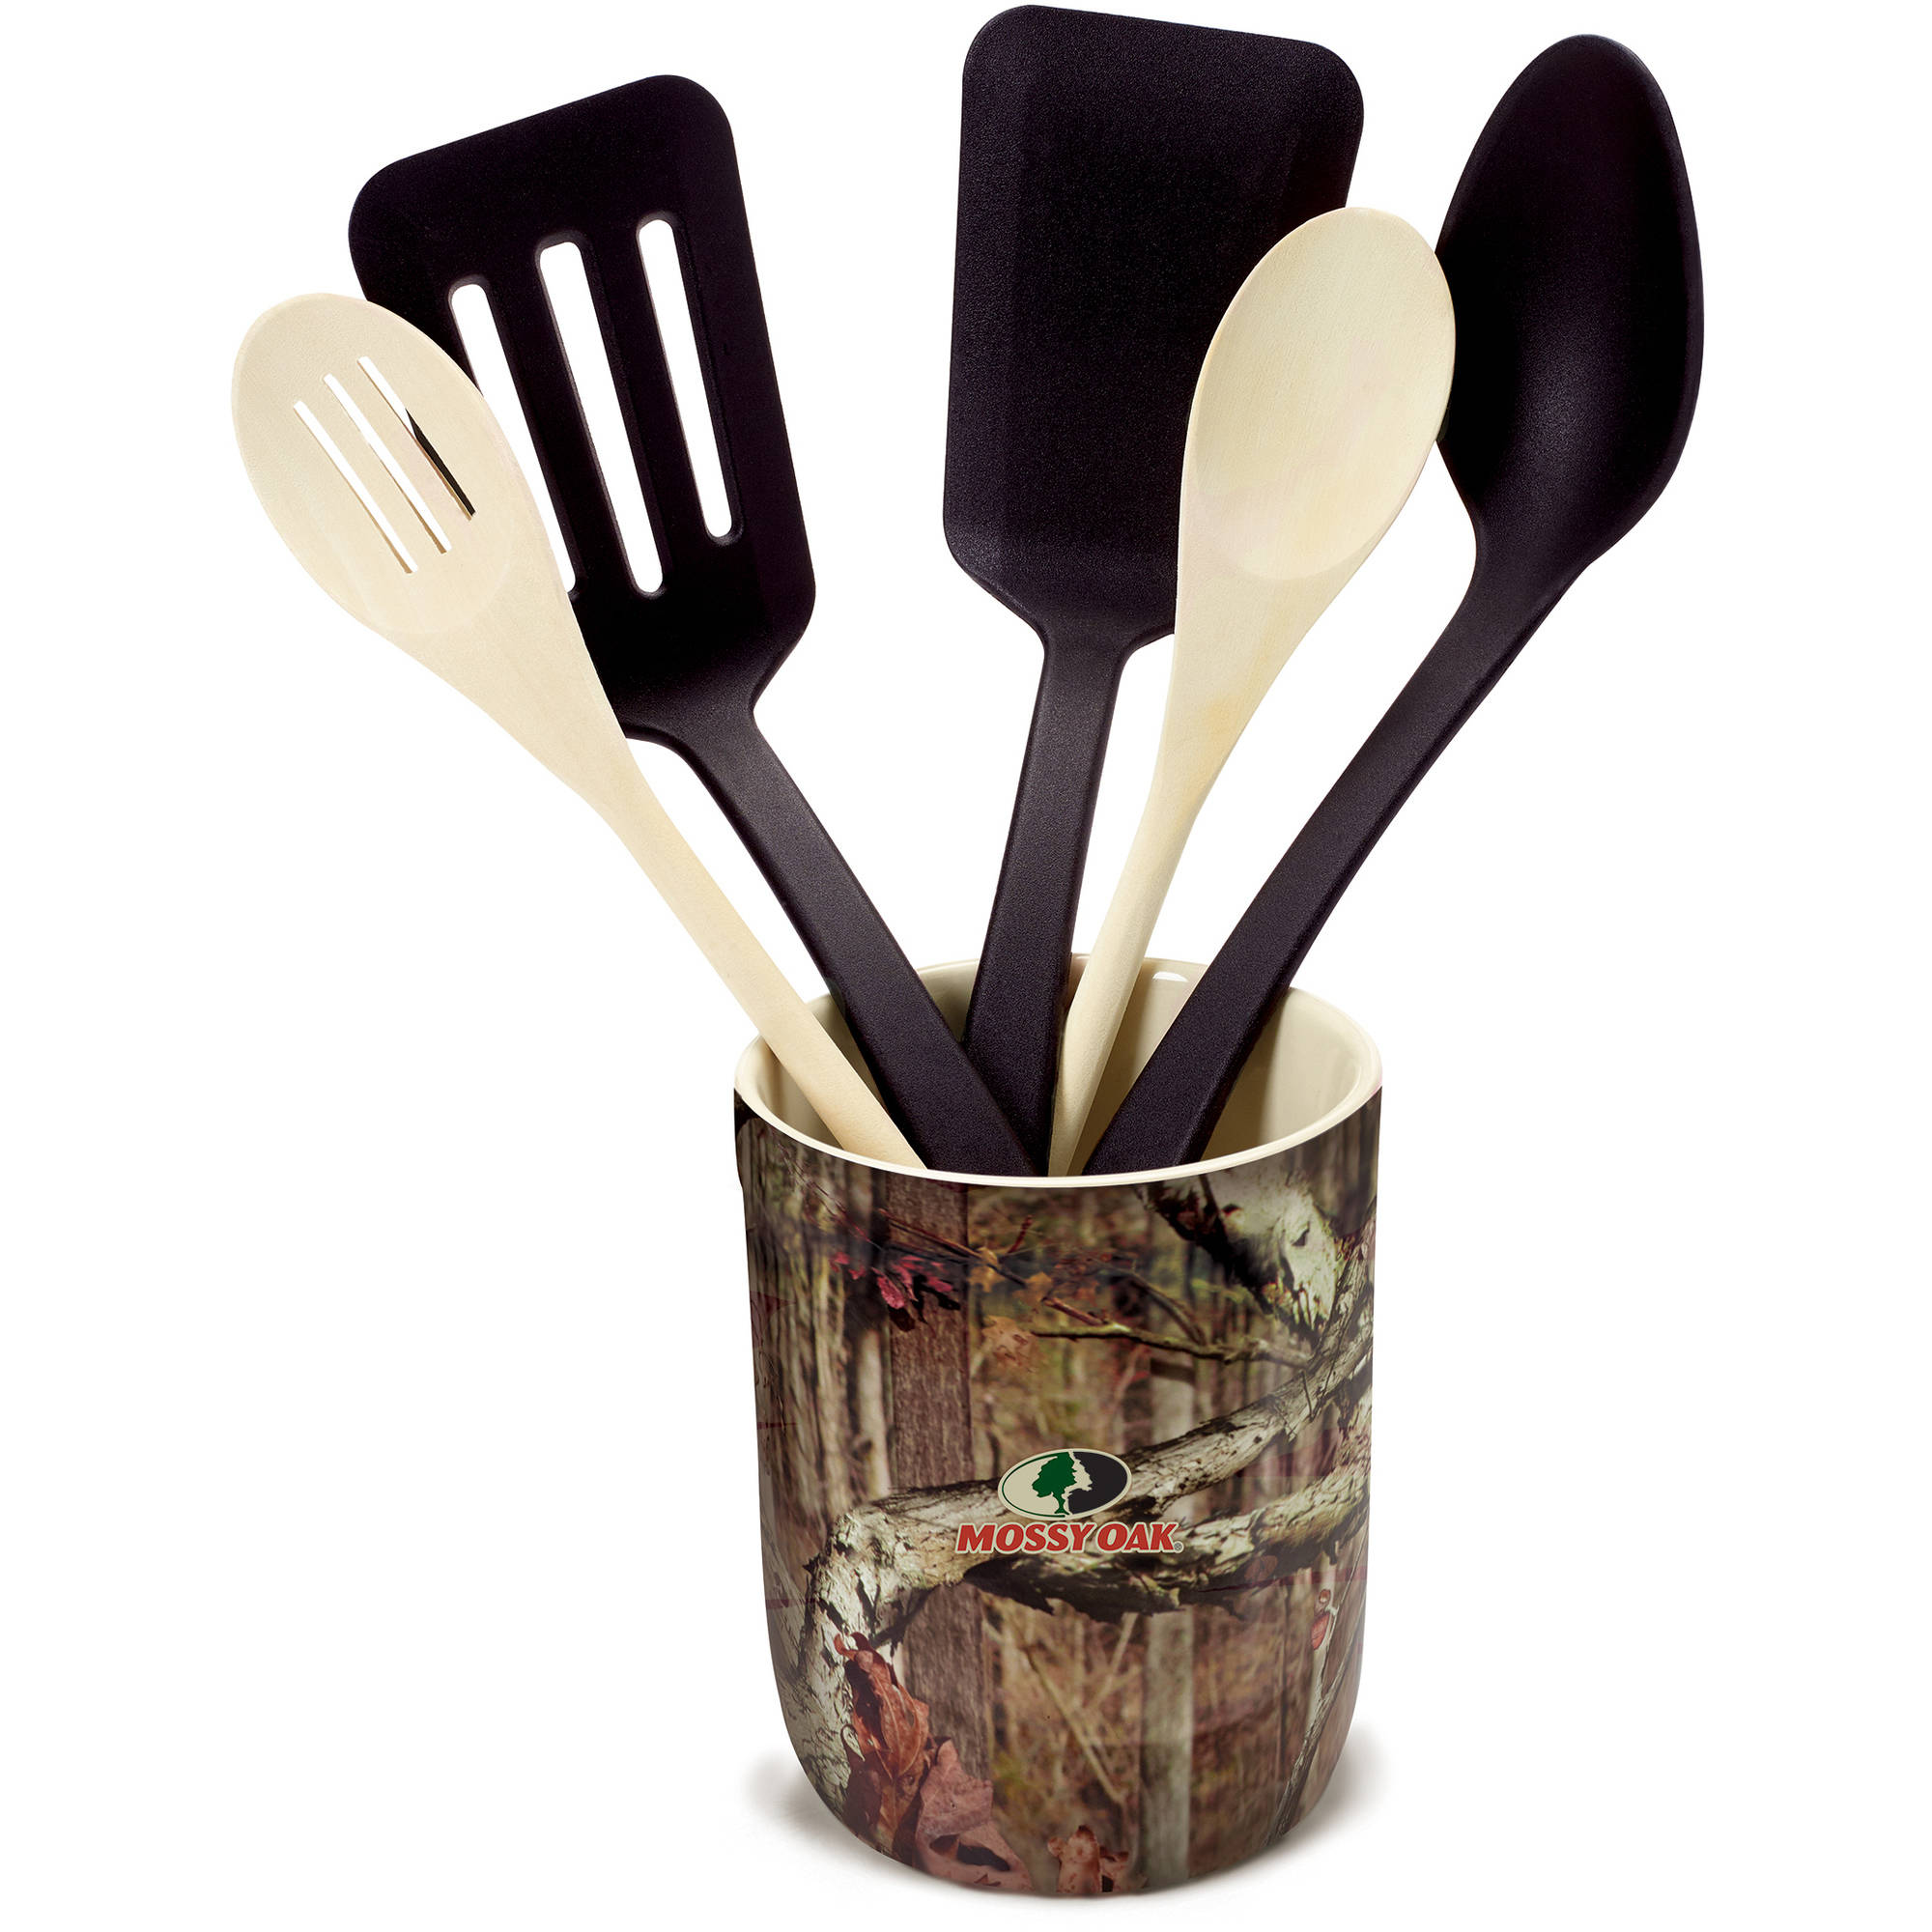 Mossy Oak 6-Piece Kitchen Tool and Gadget Crock Set